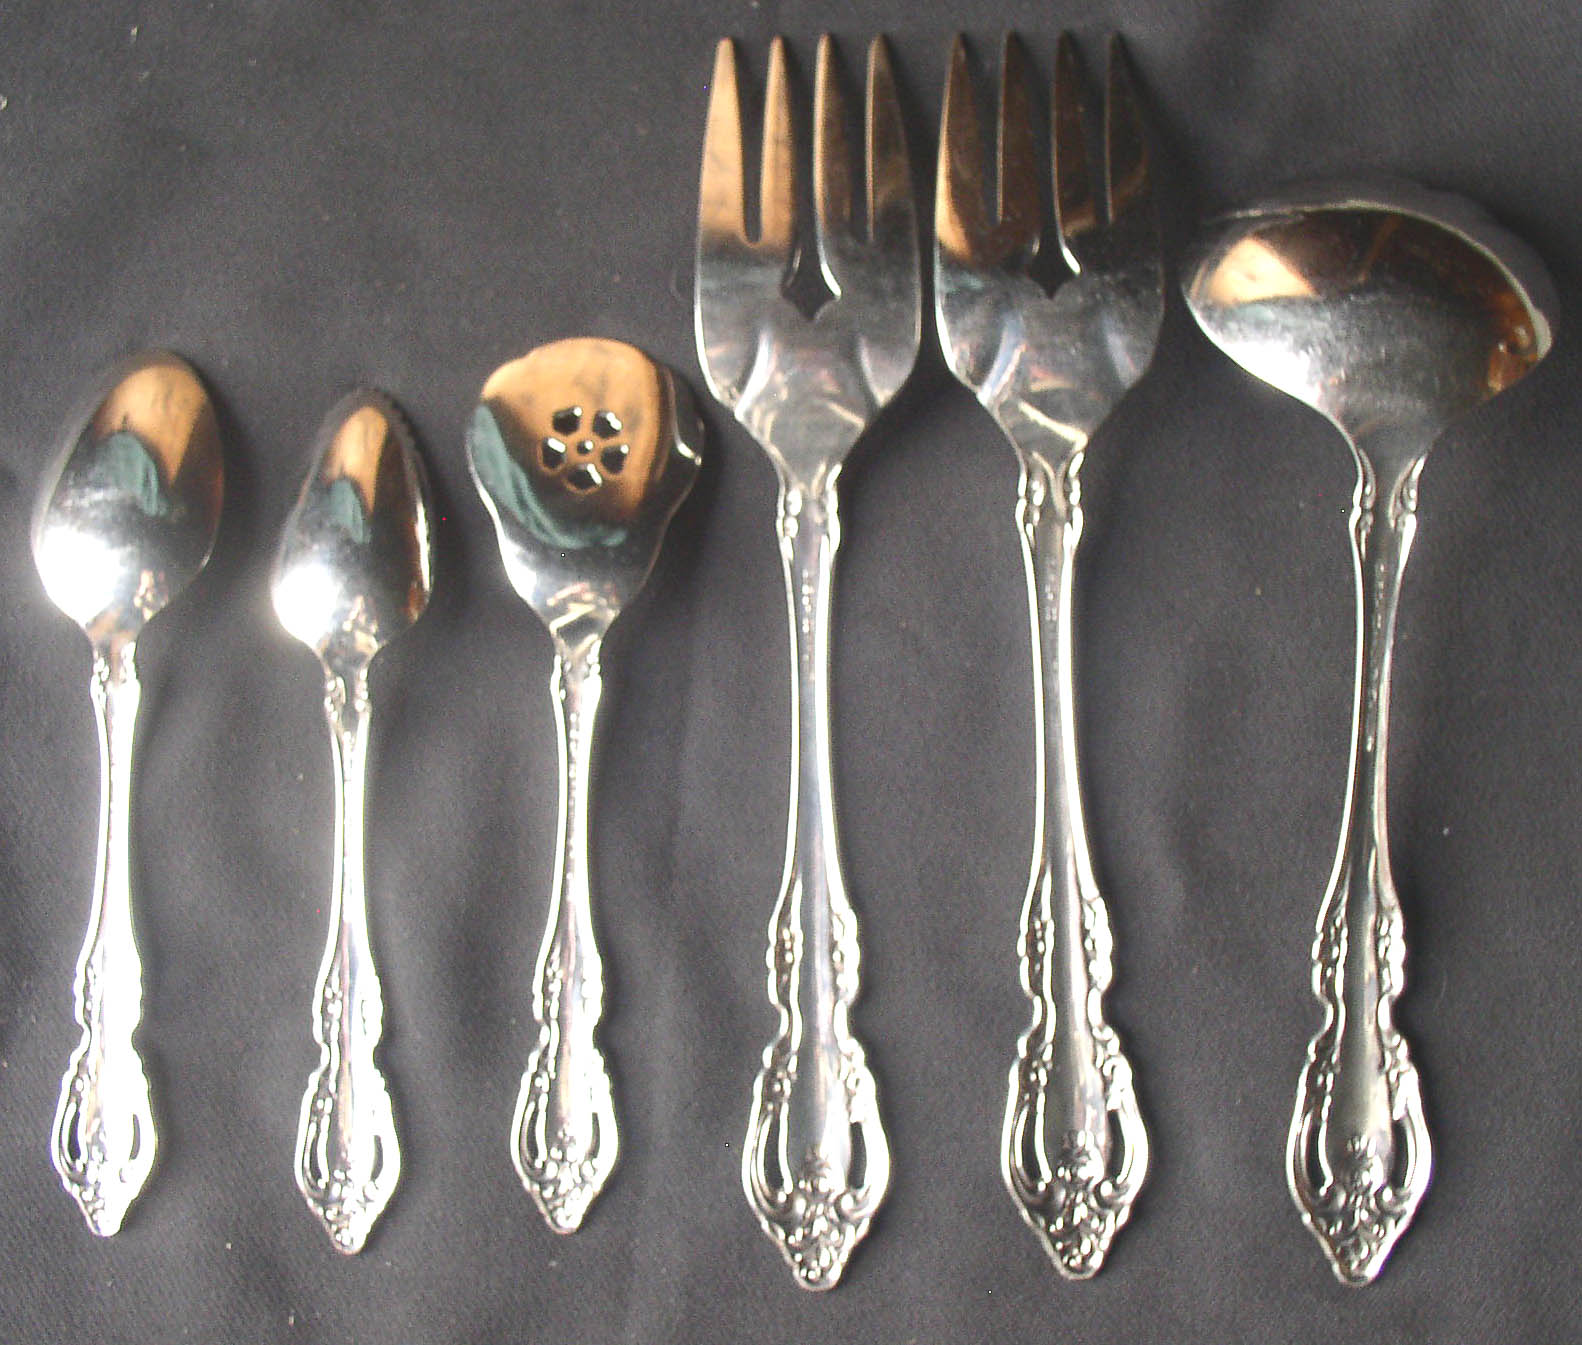 Oneida Community Flatware